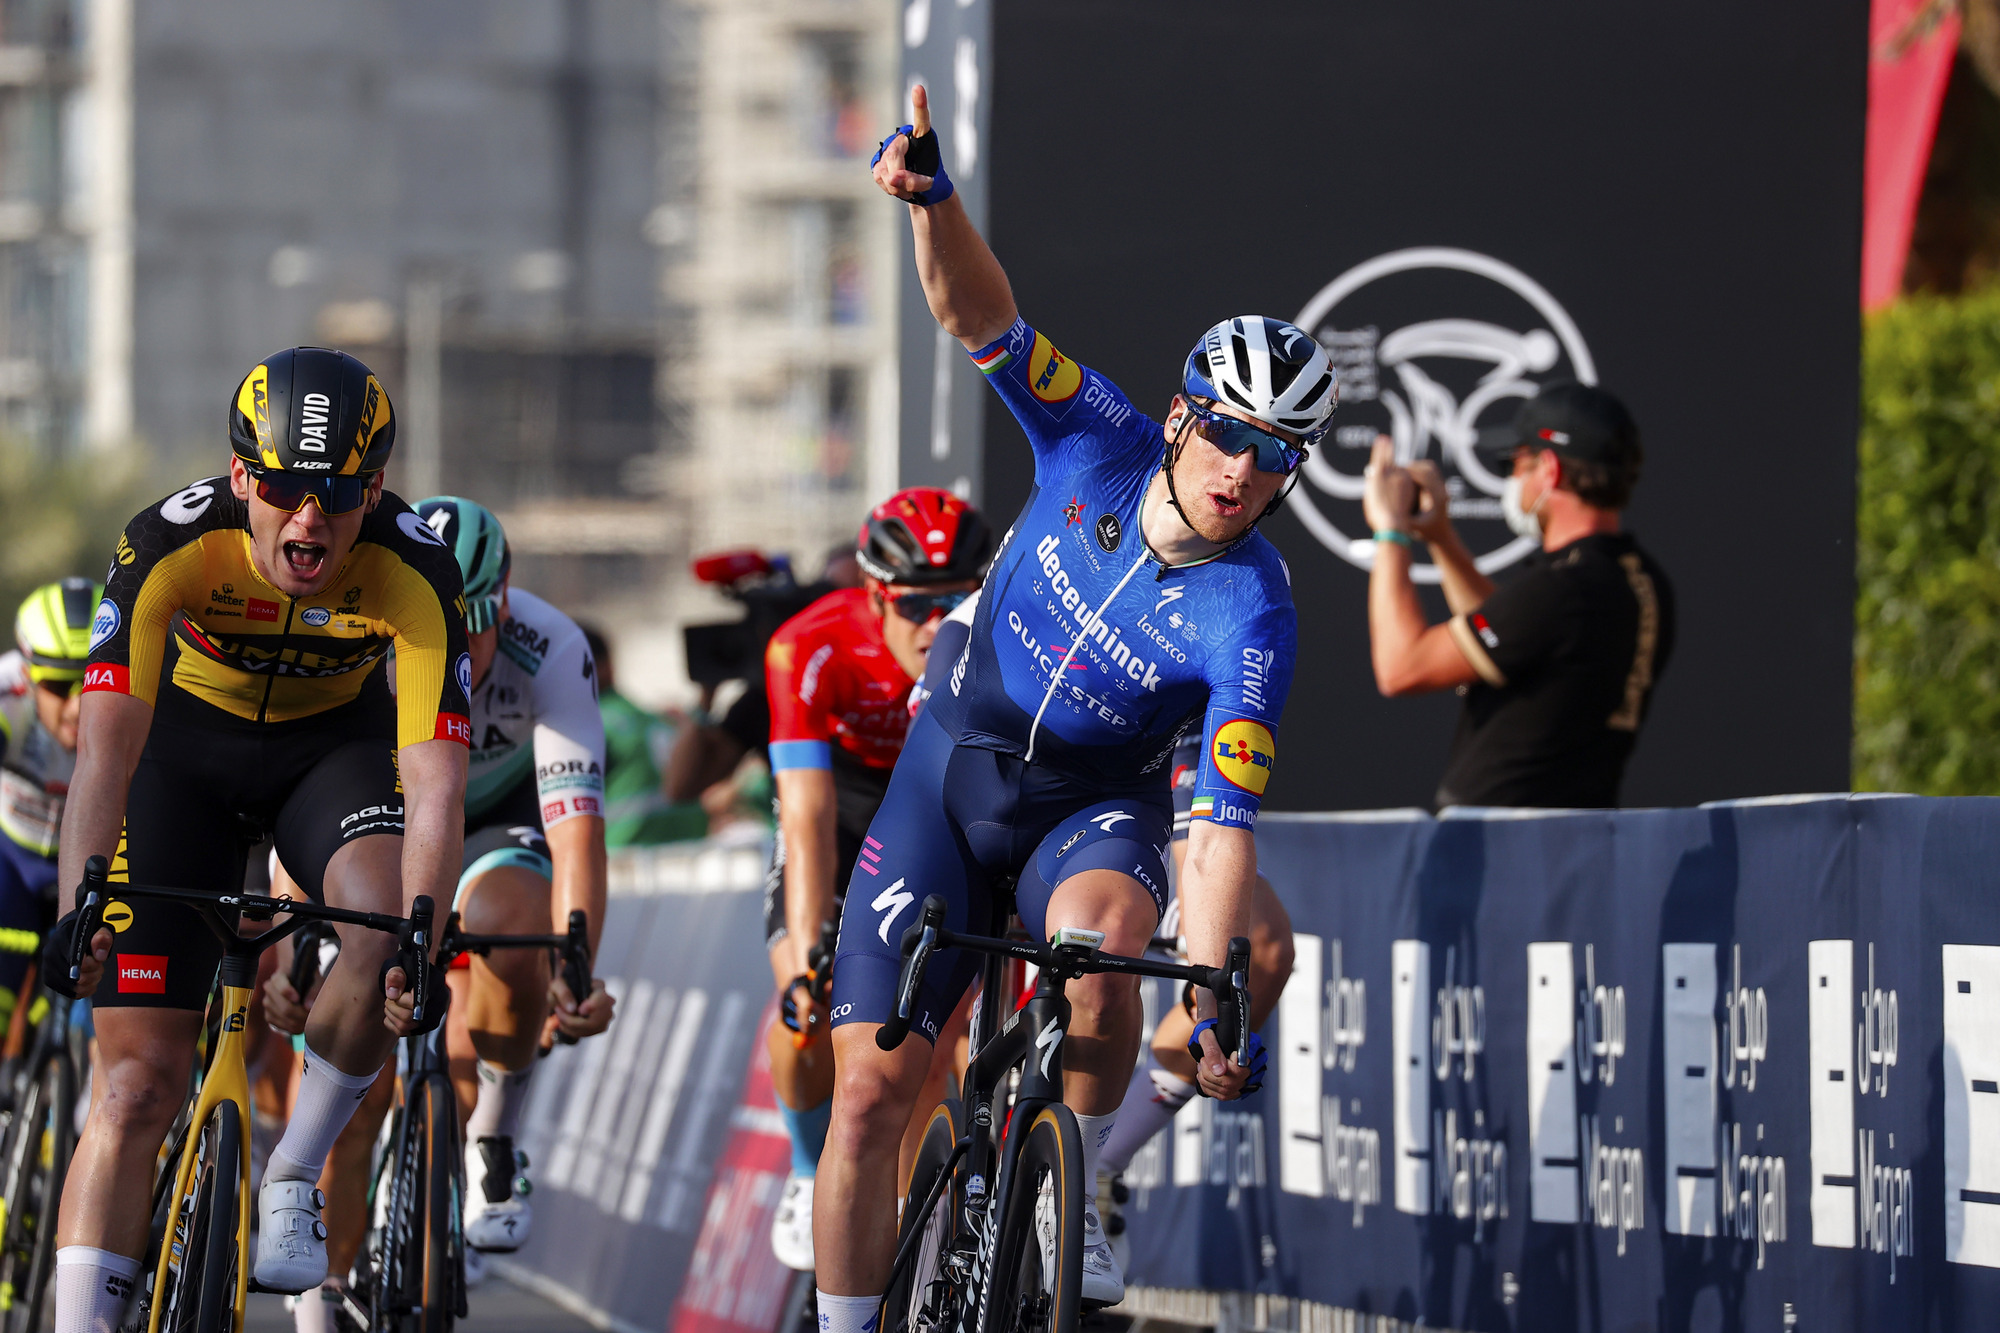 Sam Bennett (Deceuninck-QuickStep) opted to sprint on the right of the road to find a way through